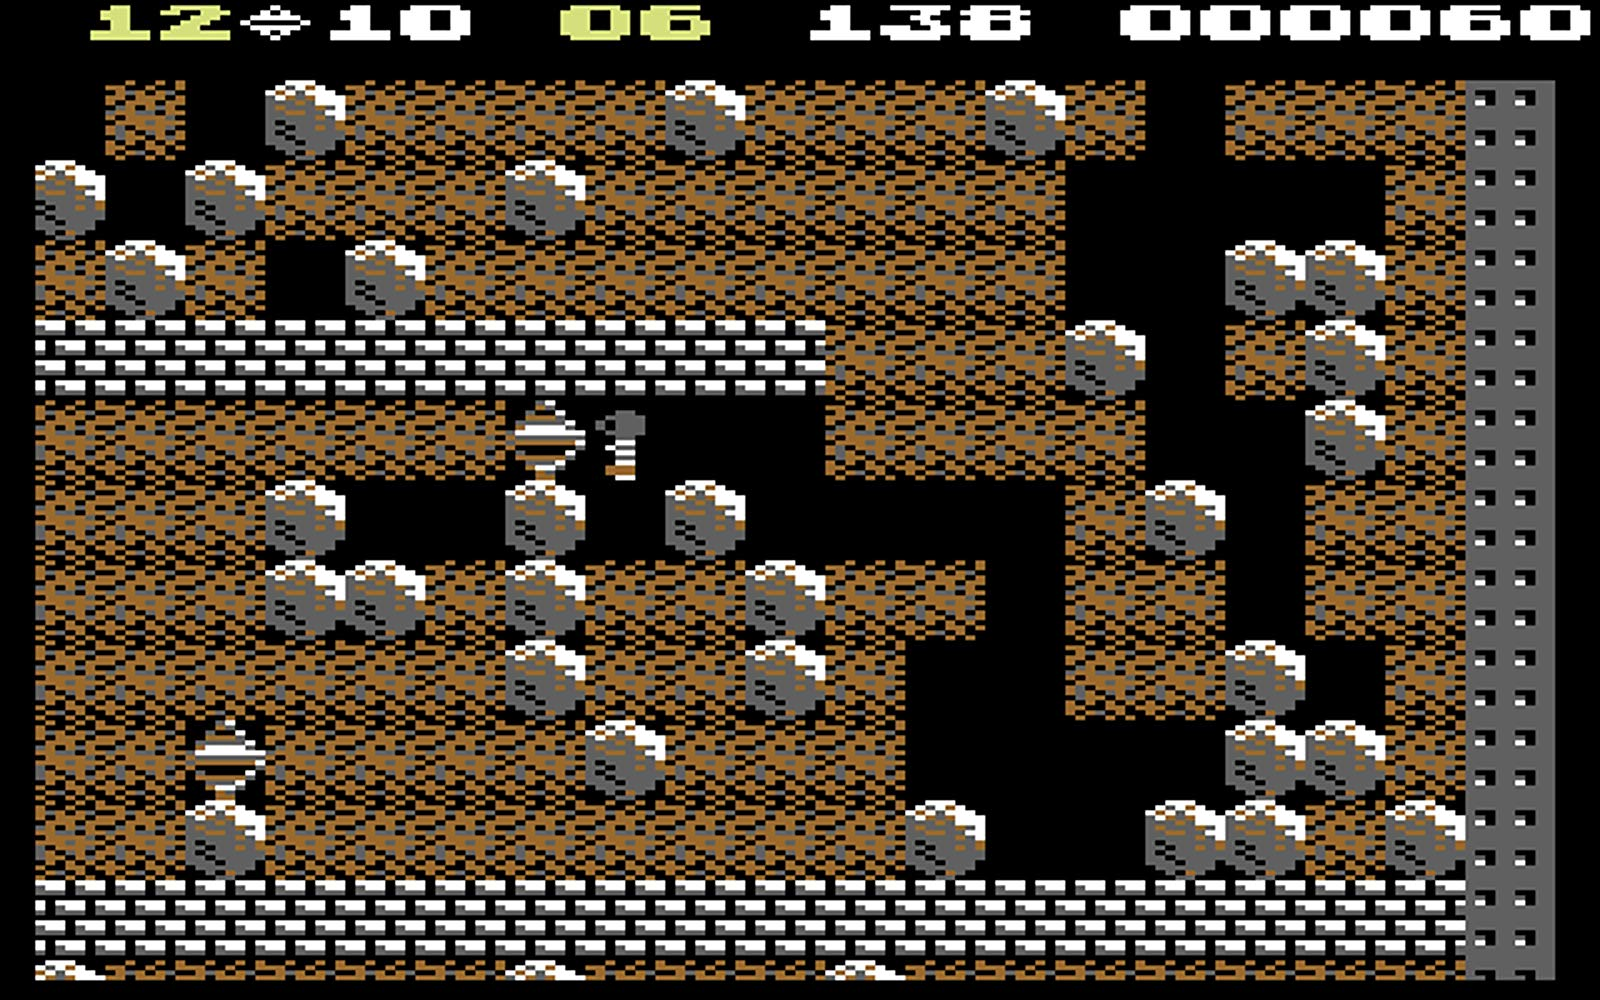 boulder dash The 20 Greatest Video Games of the 1980s